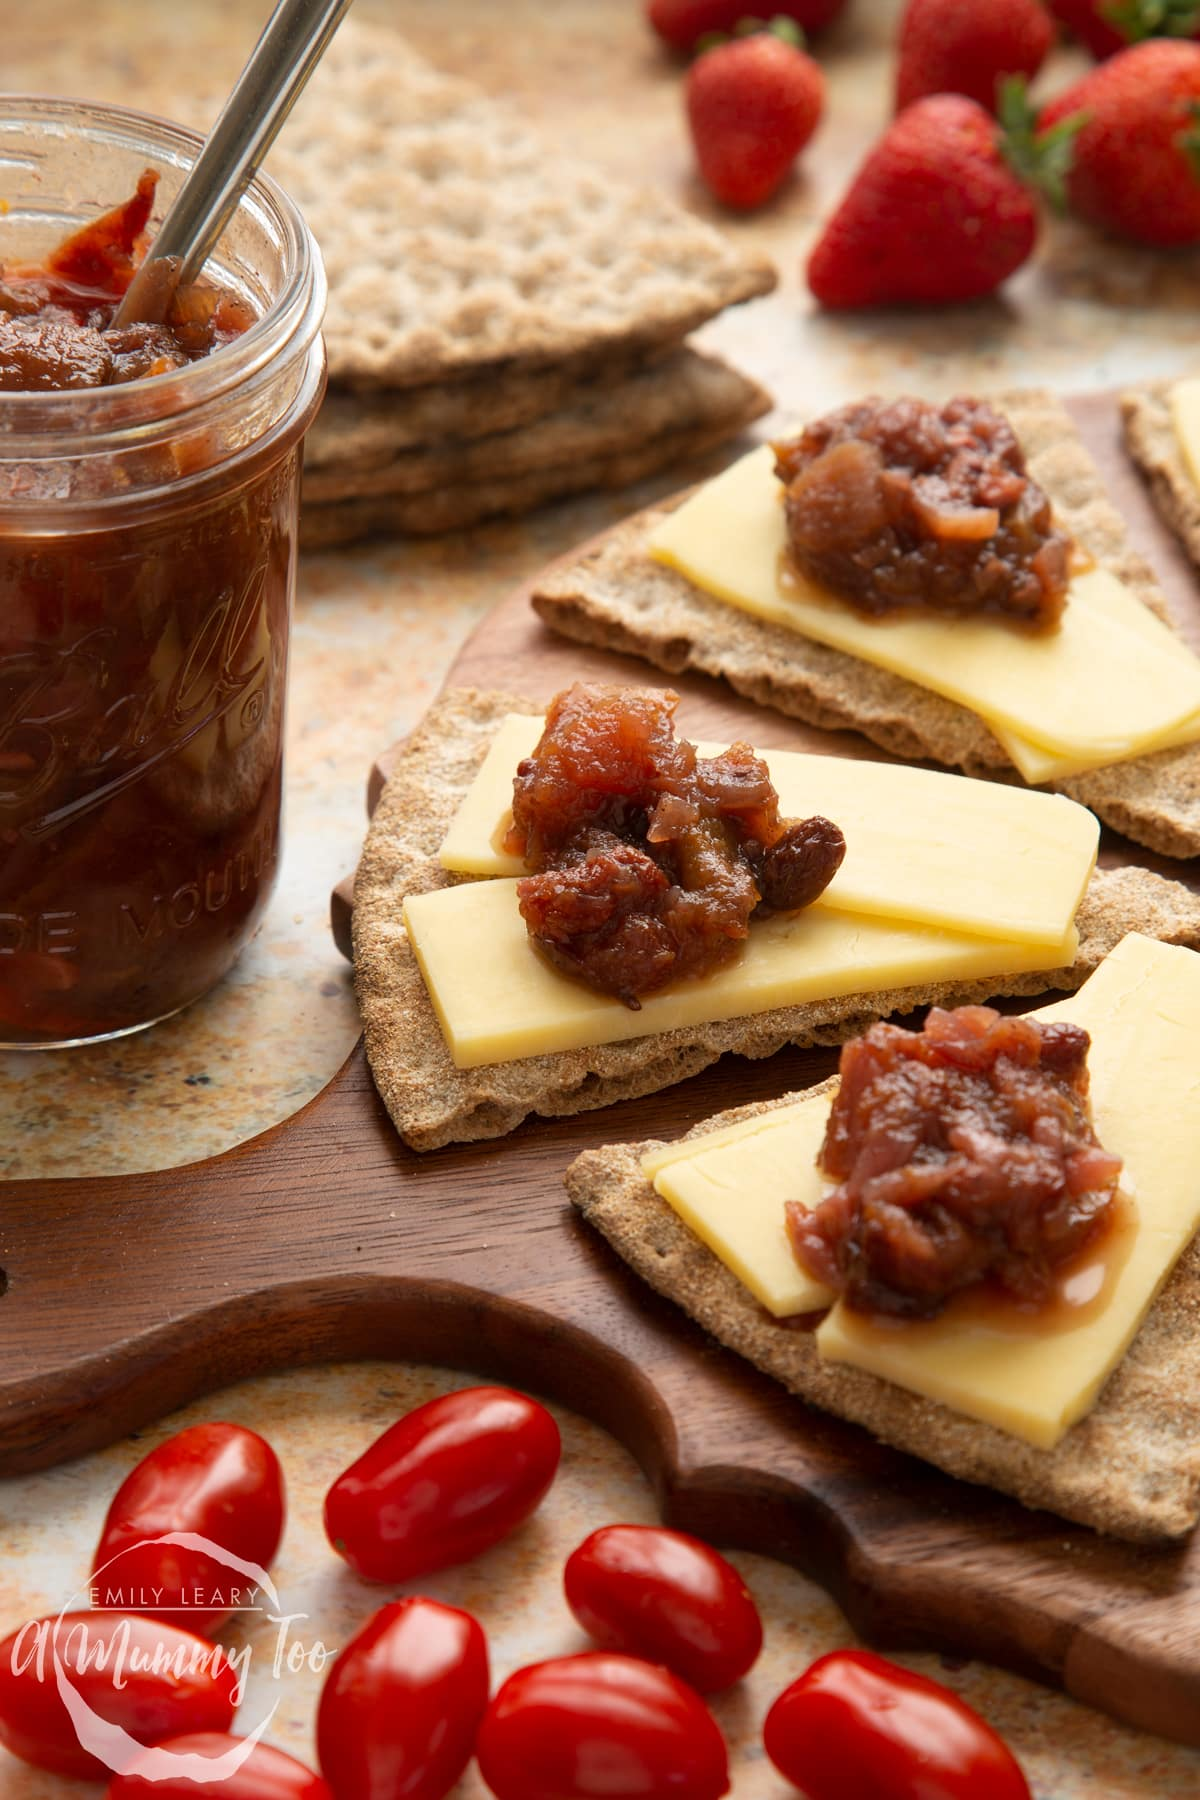 Triangular crackers topped with cheese slices and a fruit chutney recipe on a wooden board, next to a jar of chutney. Salad surrounds the board.